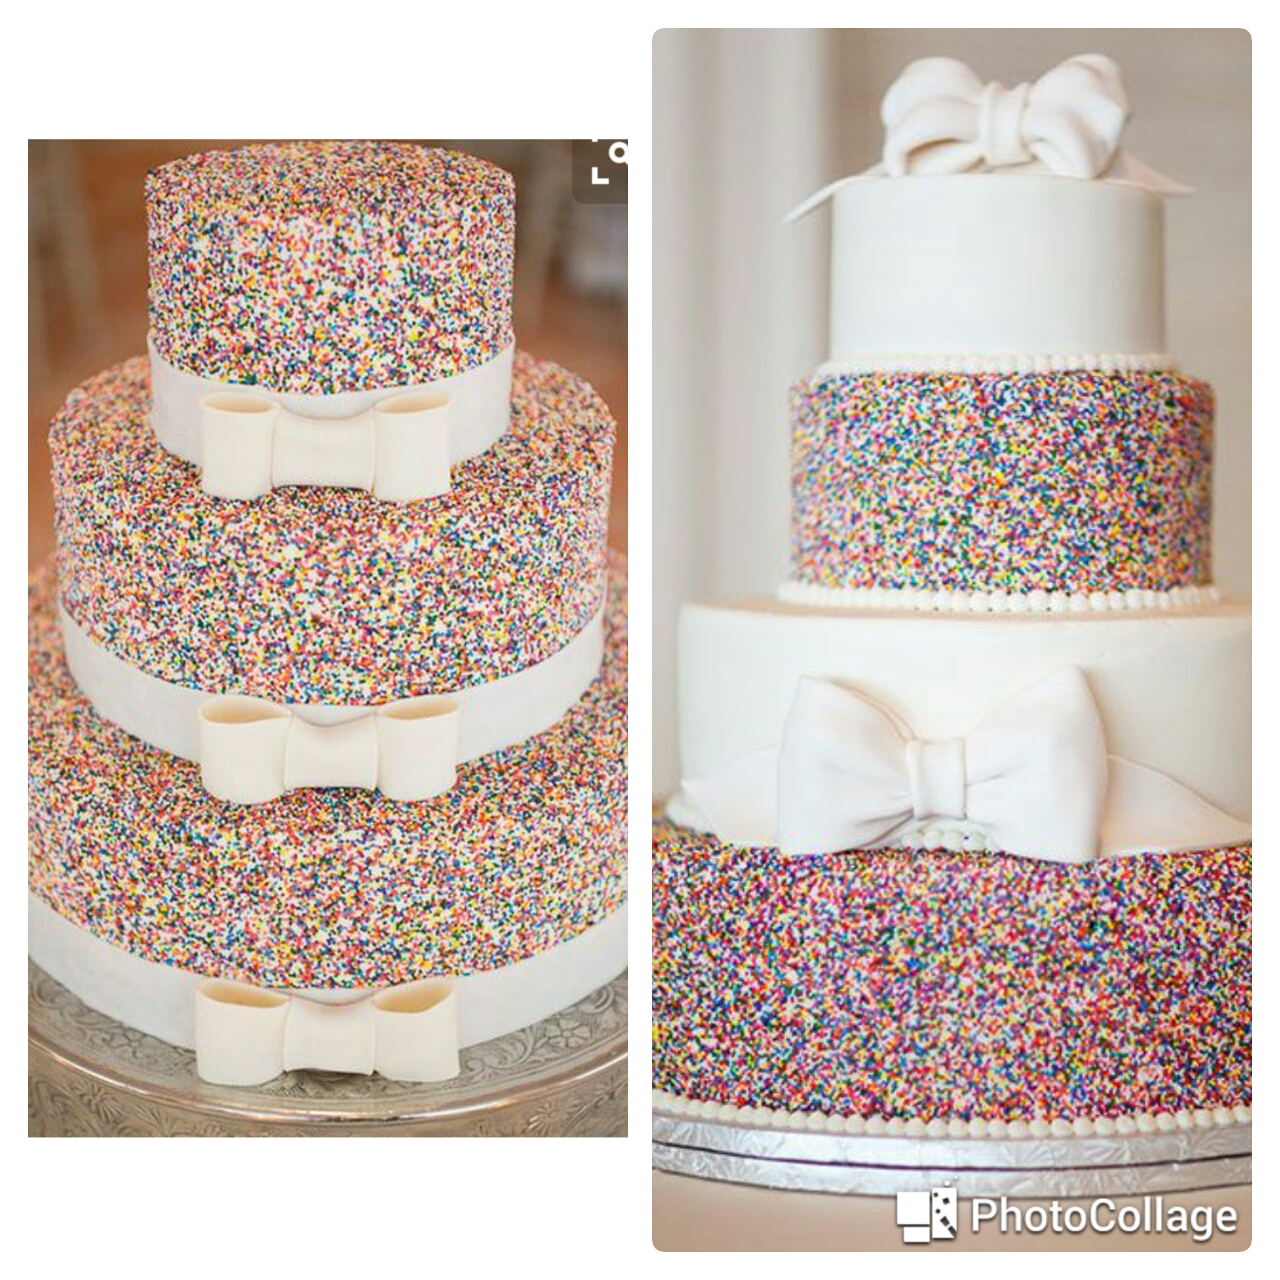 Sprinkles Wedding Cakes. Mobile Image